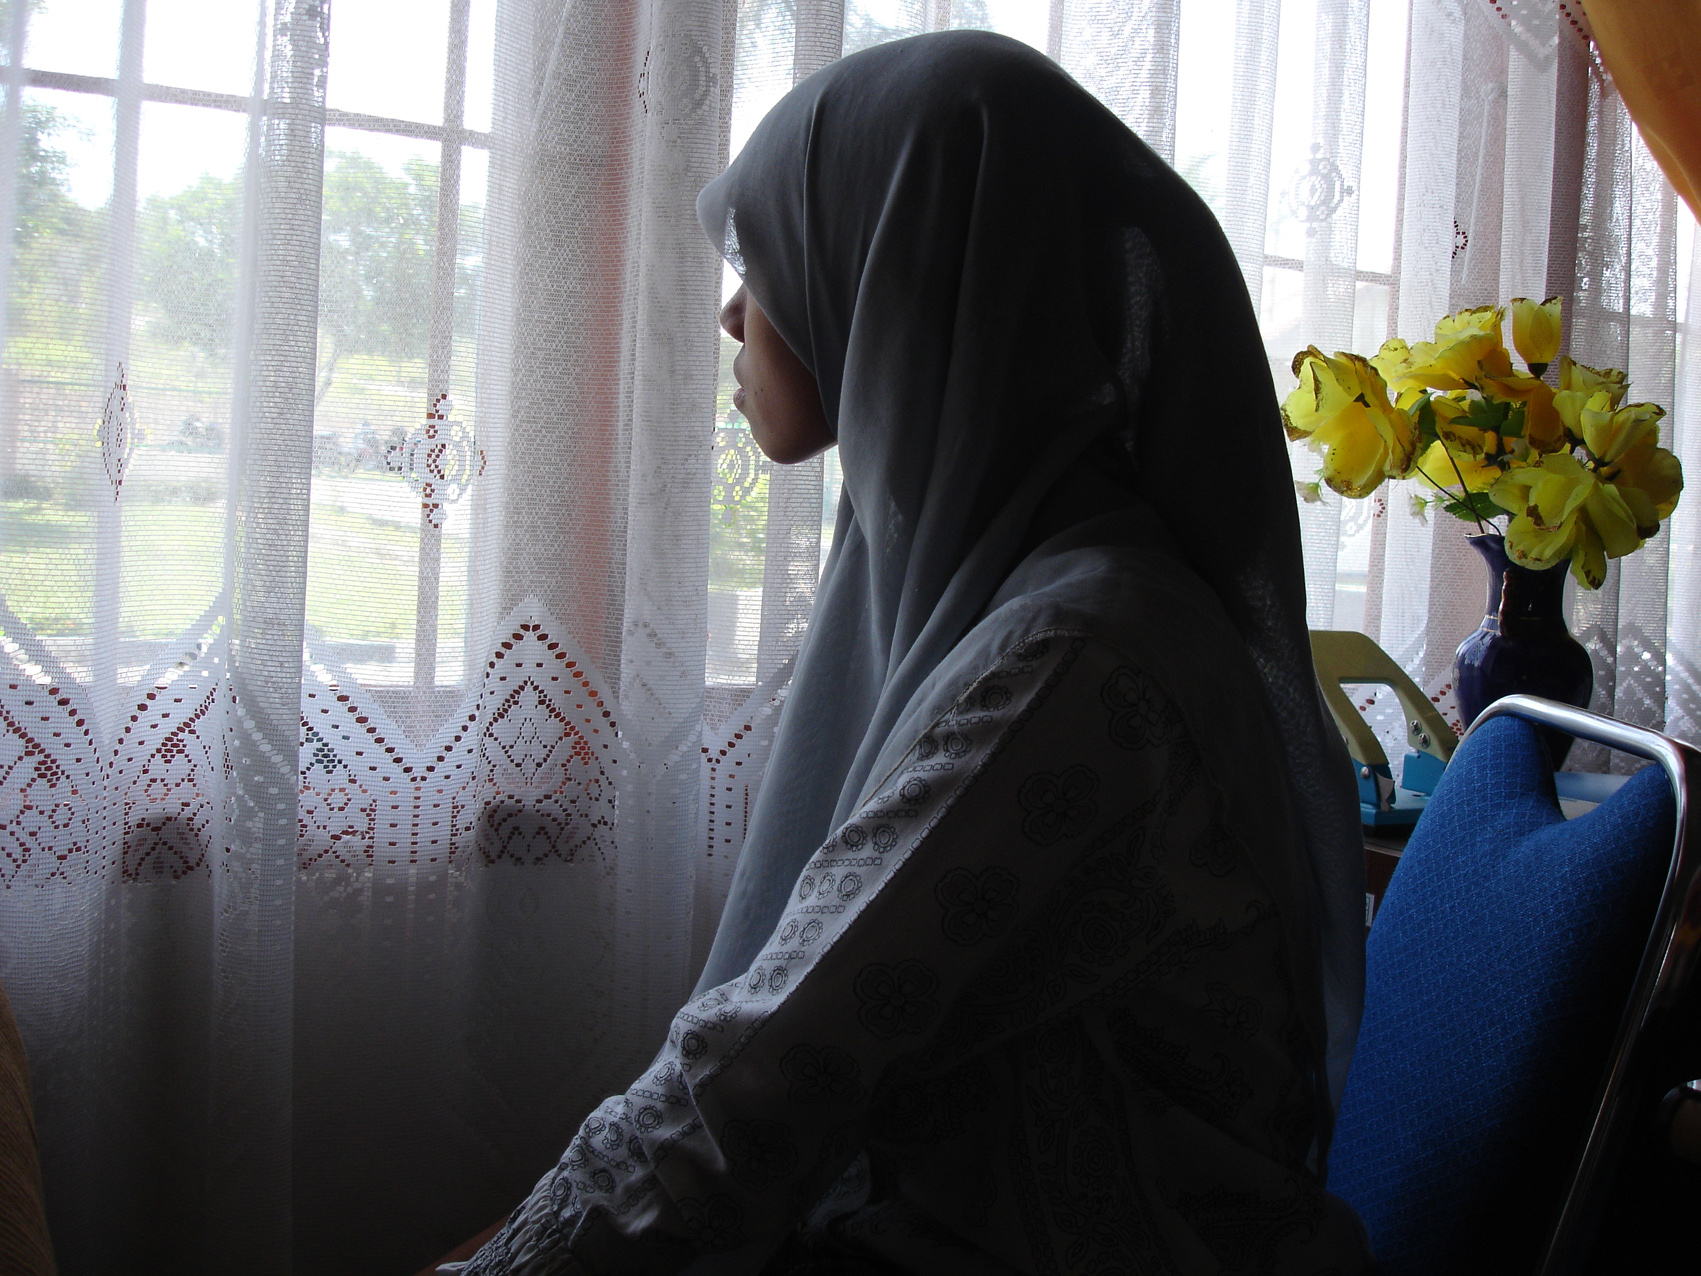 Aisha*, 15, is one of some 5,000 children in Indonesia's prisons